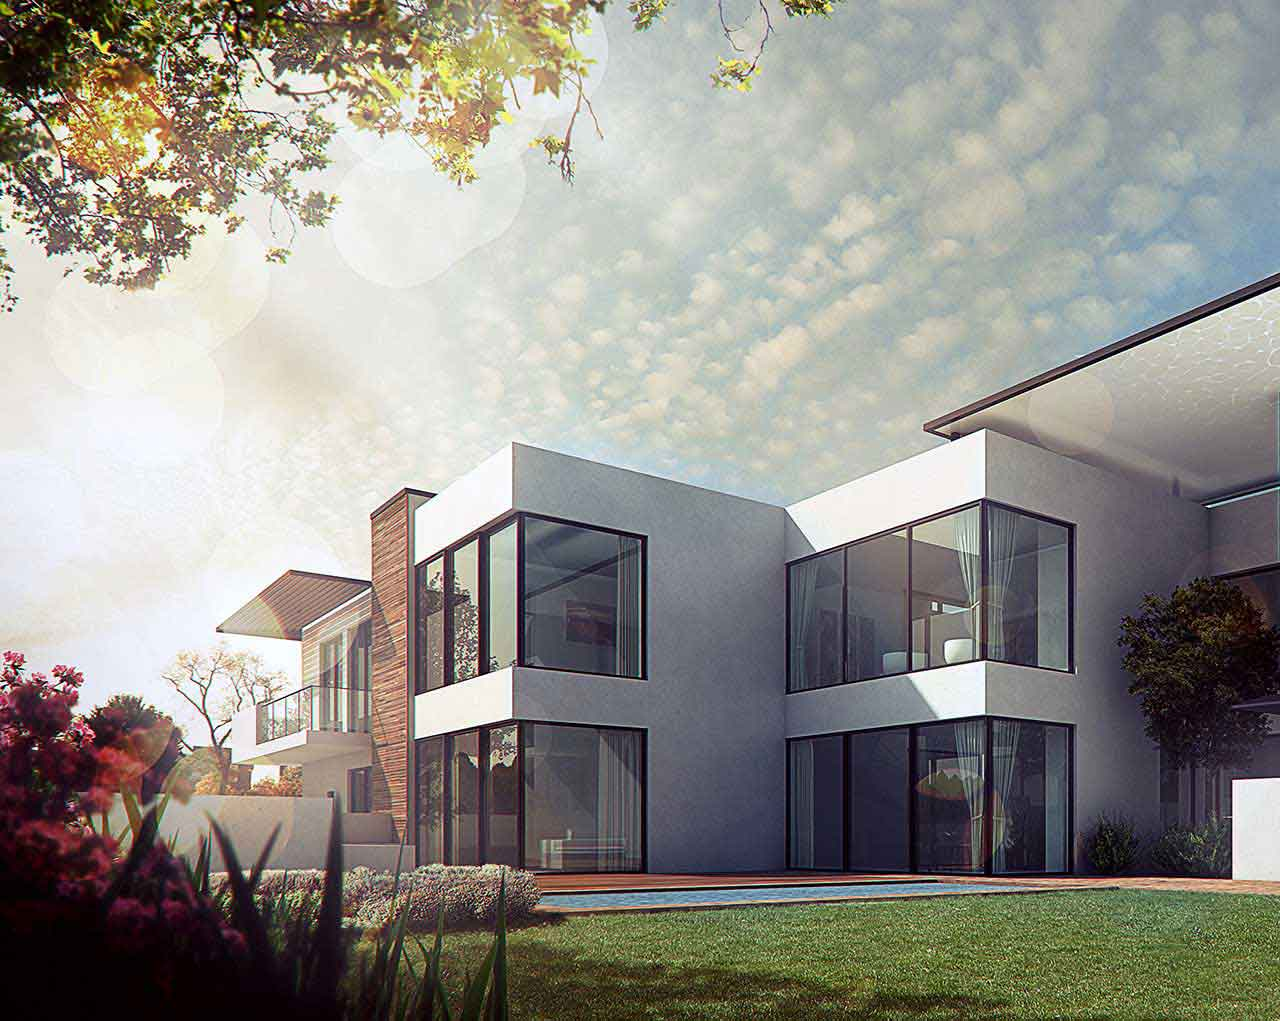 Architectural visualisation and creative CGI production